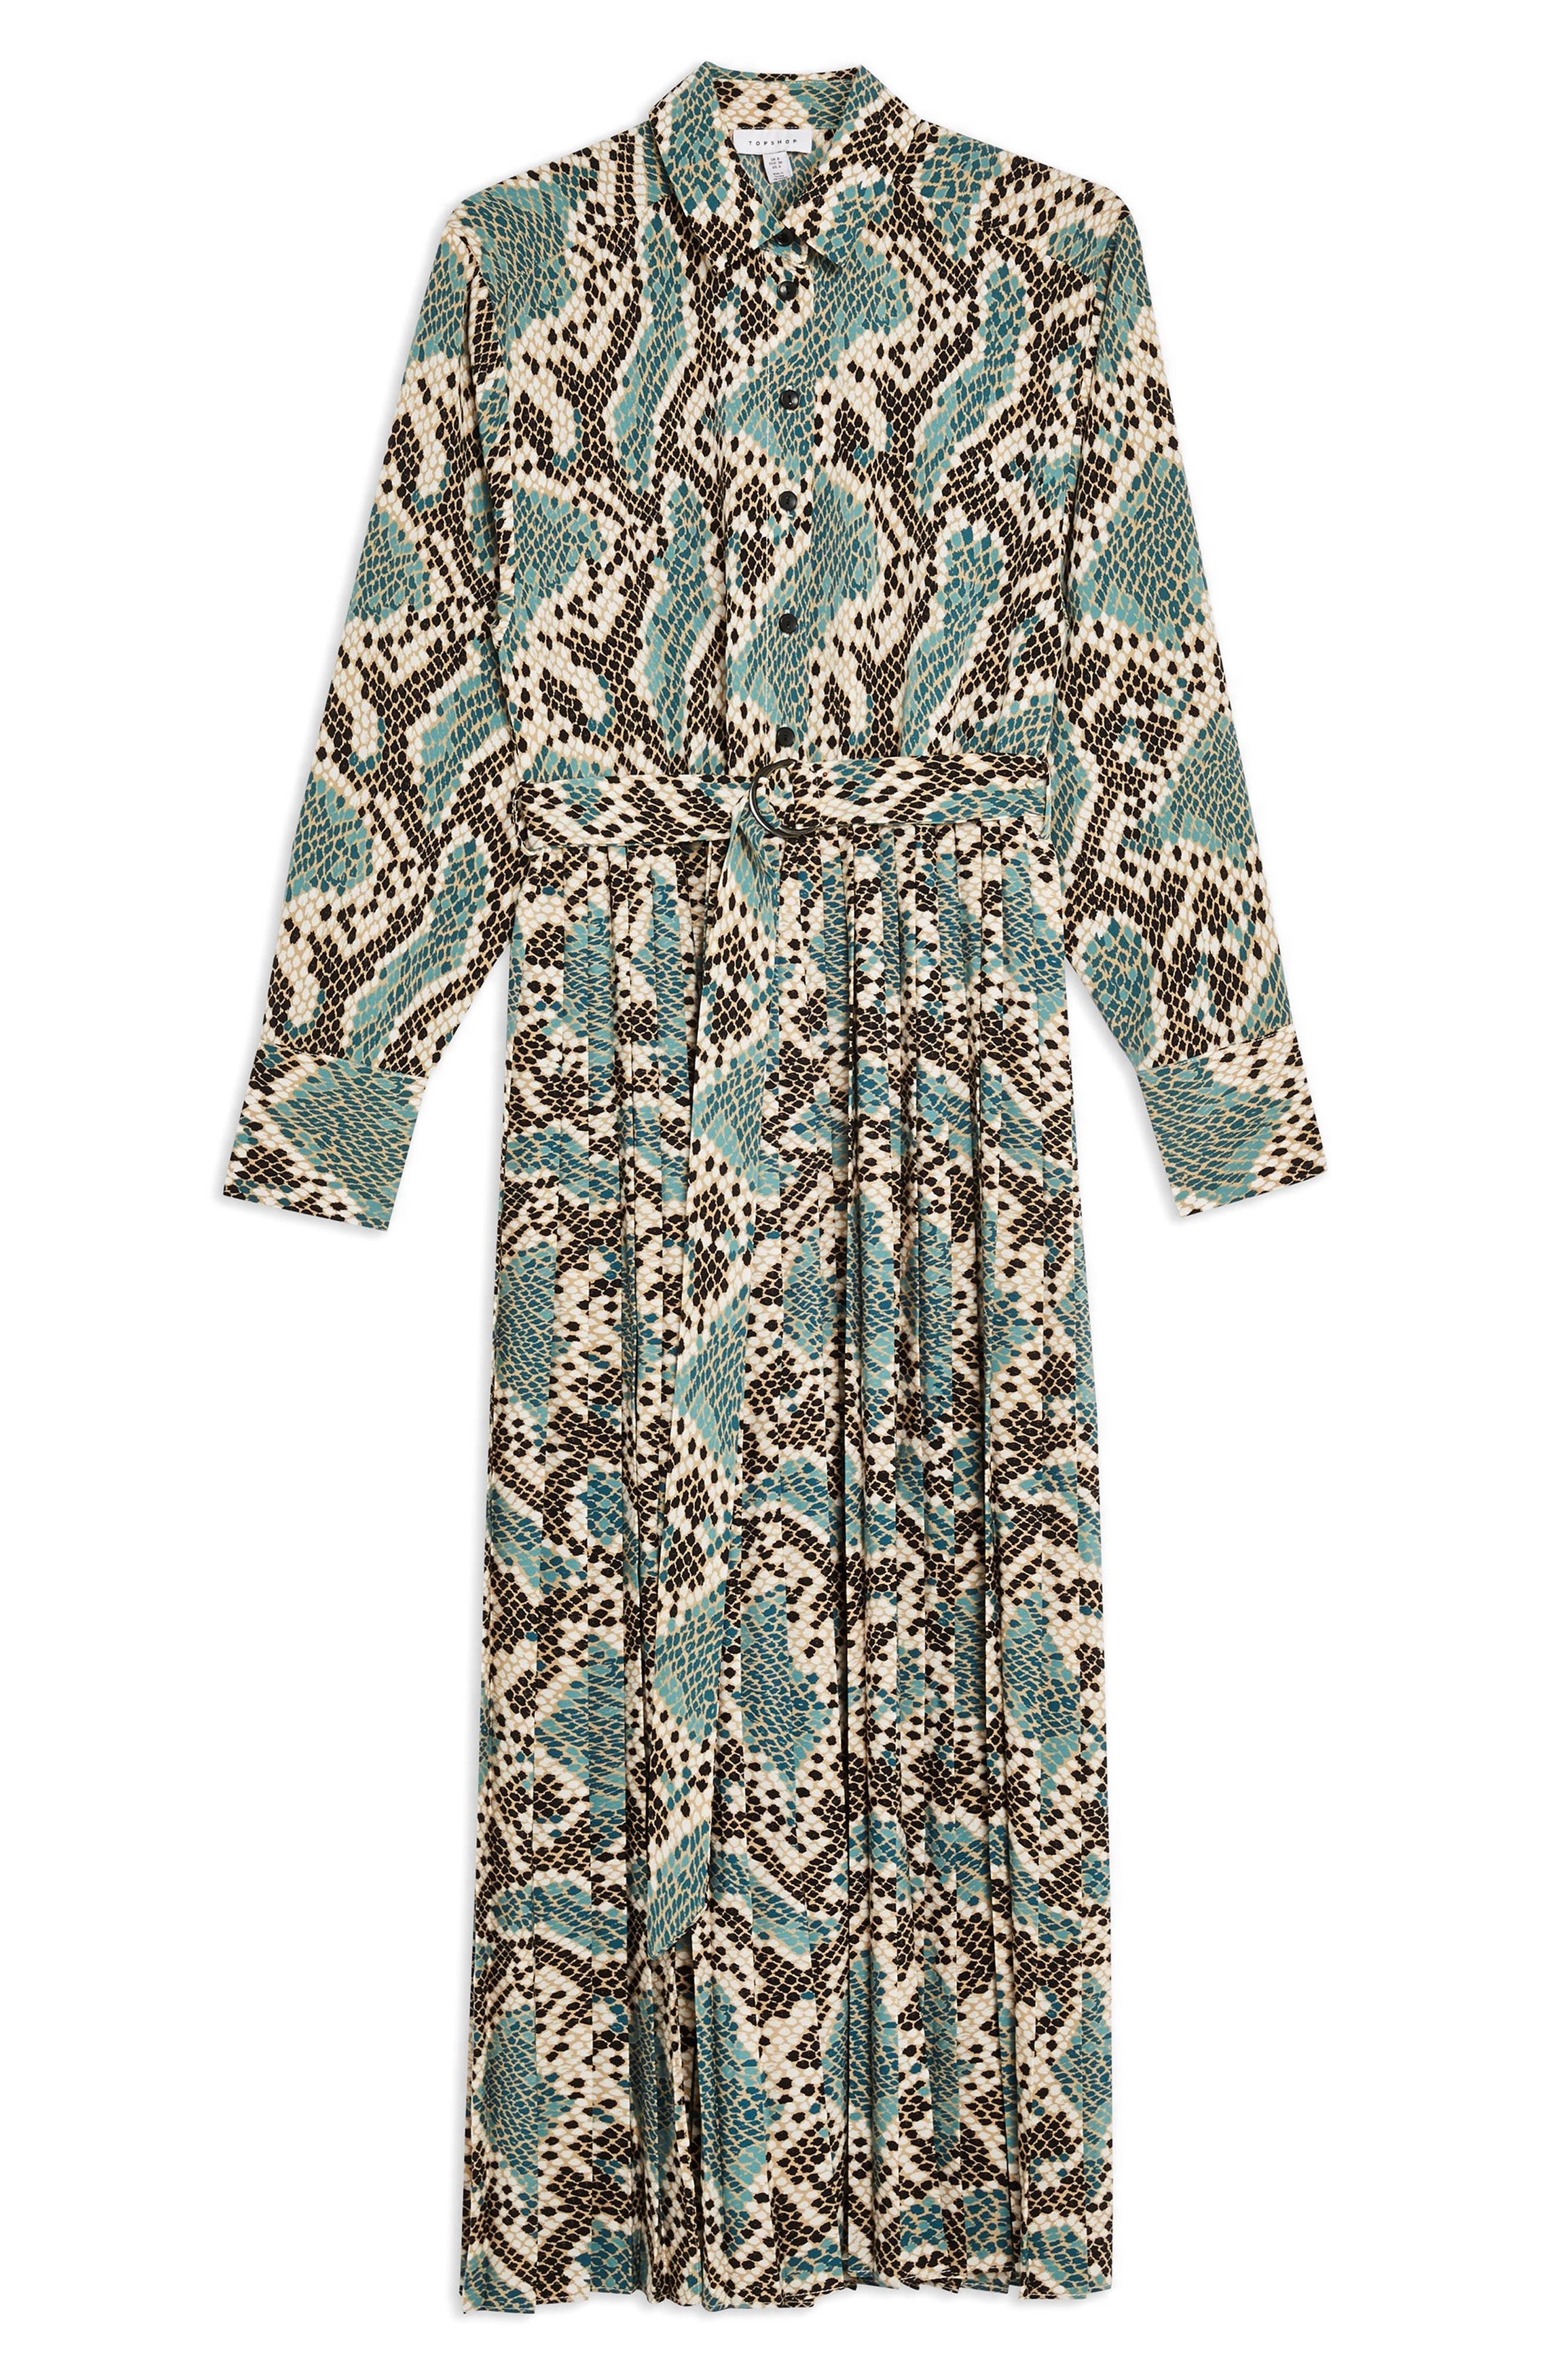 TOPSHOP,                             Python Pleated Shirtdress,                             Alternate thumbnail 3, color,                             BLUE MULTI